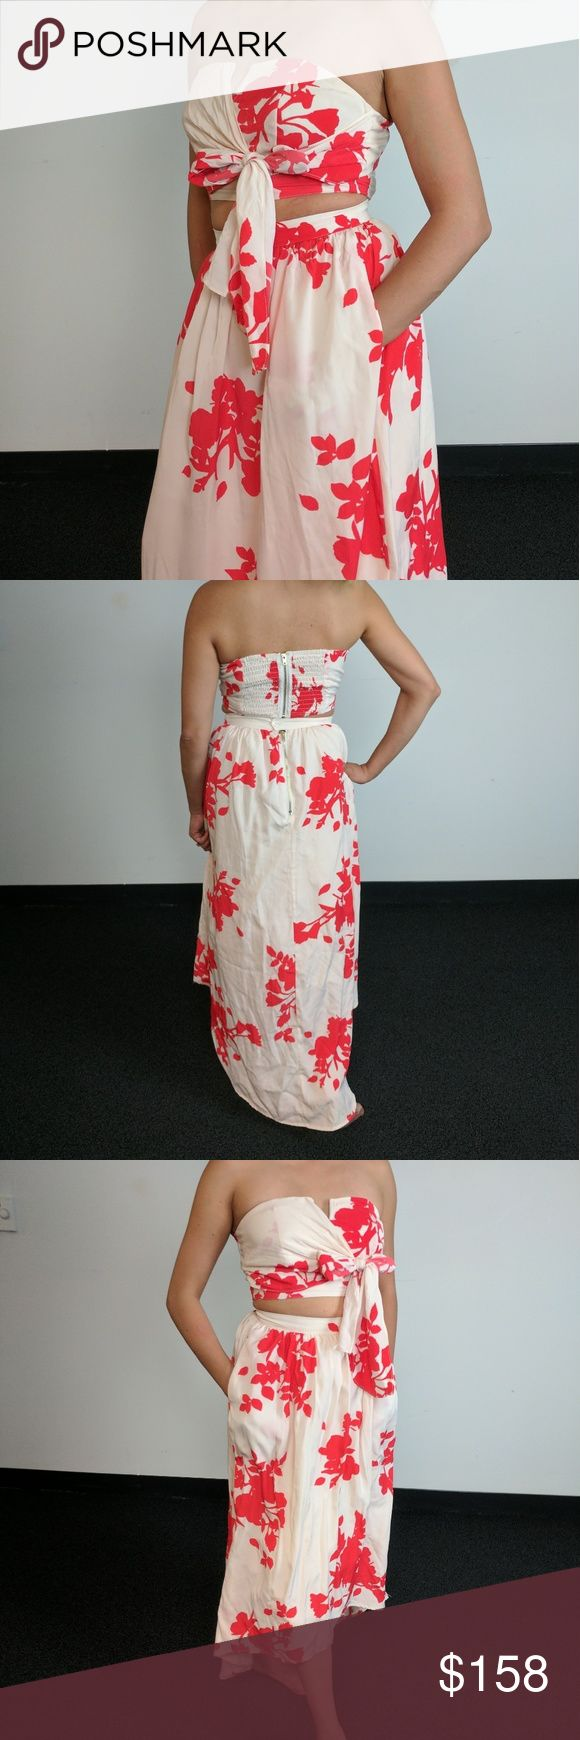 Floral 2 Piece Skirt ?? Very unique floral 2 piece - Bandeau top with tie in front - Top back zipper - Midi skirt has pockets - Skirt has tulle layers underneath for a fuller effect - Back skirt zipper with button clasp - Got tons of compliments with this one!   Purchased from Nordstrom Dresses Midi